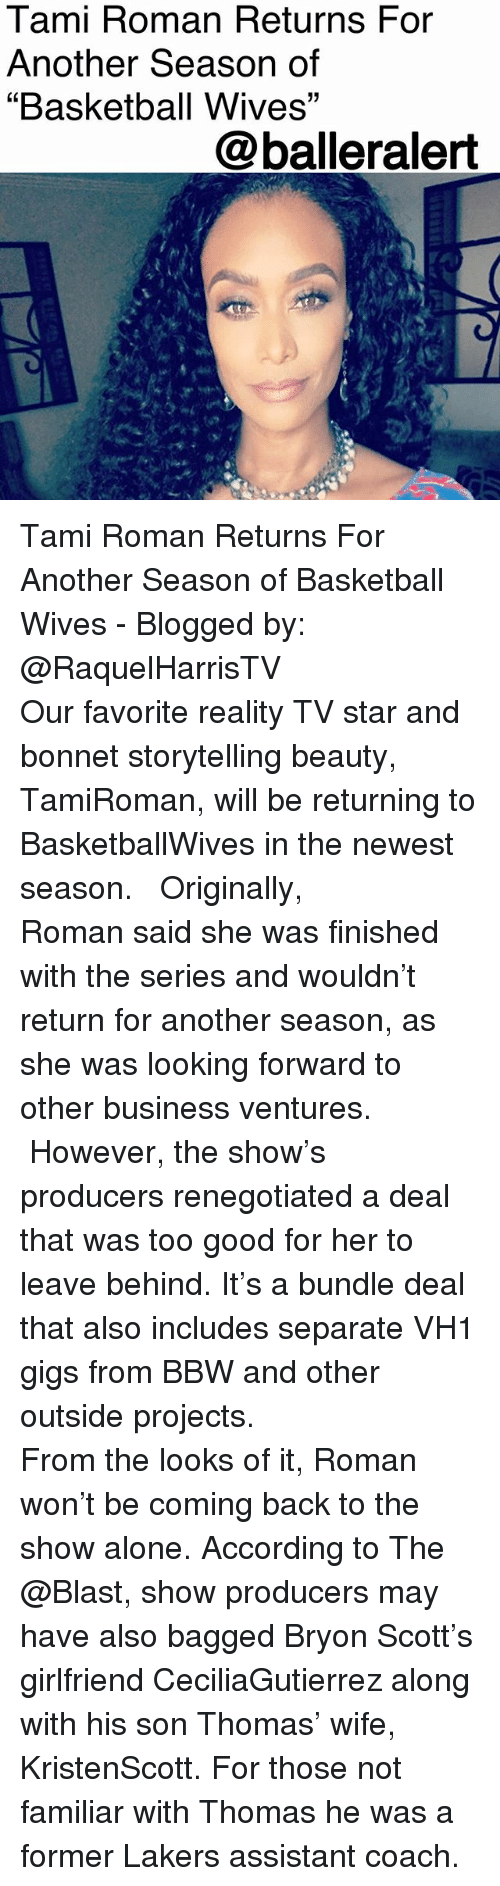 "Being Alone, Basketball, and Bbw: Tami Roman Returns For  Another Season of  ""Basketball Wives""  @balleralert Tami Roman Returns For Another Season of Basketball Wives - Blogged by: @RaquelHarrisTV ⠀⠀⠀⠀⠀⠀⠀⠀ ⠀⠀⠀⠀⠀⠀⠀⠀ Our favorite reality TV star and bonnet storytelling beauty, TamiRoman, will be returning to BasketballWives in the newest season. ⠀⠀⠀⠀⠀⠀⠀⠀ ⠀⠀⠀⠀⠀⠀⠀⠀ Originally, Roman said she was finished with the series and wouldn't return for another season, as she was looking forward to other business ventures. ⠀⠀⠀⠀⠀⠀⠀⠀ ⠀⠀⠀⠀⠀⠀⠀⠀ However, the show's producers renegotiated a deal that was too good for her to leave behind. It's a bundle deal that also includes separate VH1 gigs from BBW and other outside projects. ⠀⠀⠀⠀⠀⠀⠀⠀ ⠀⠀⠀⠀⠀⠀⠀⠀ From the looks of it, Roman won't be coming back to the show alone. According to The @Blast, show producers may have also bagged Bryon Scott's girlfriend CeciliaGutierrez along with his son Thomas' wife, KristenScott. For those not familiar with Thomas he was a former Lakers assistant coach."